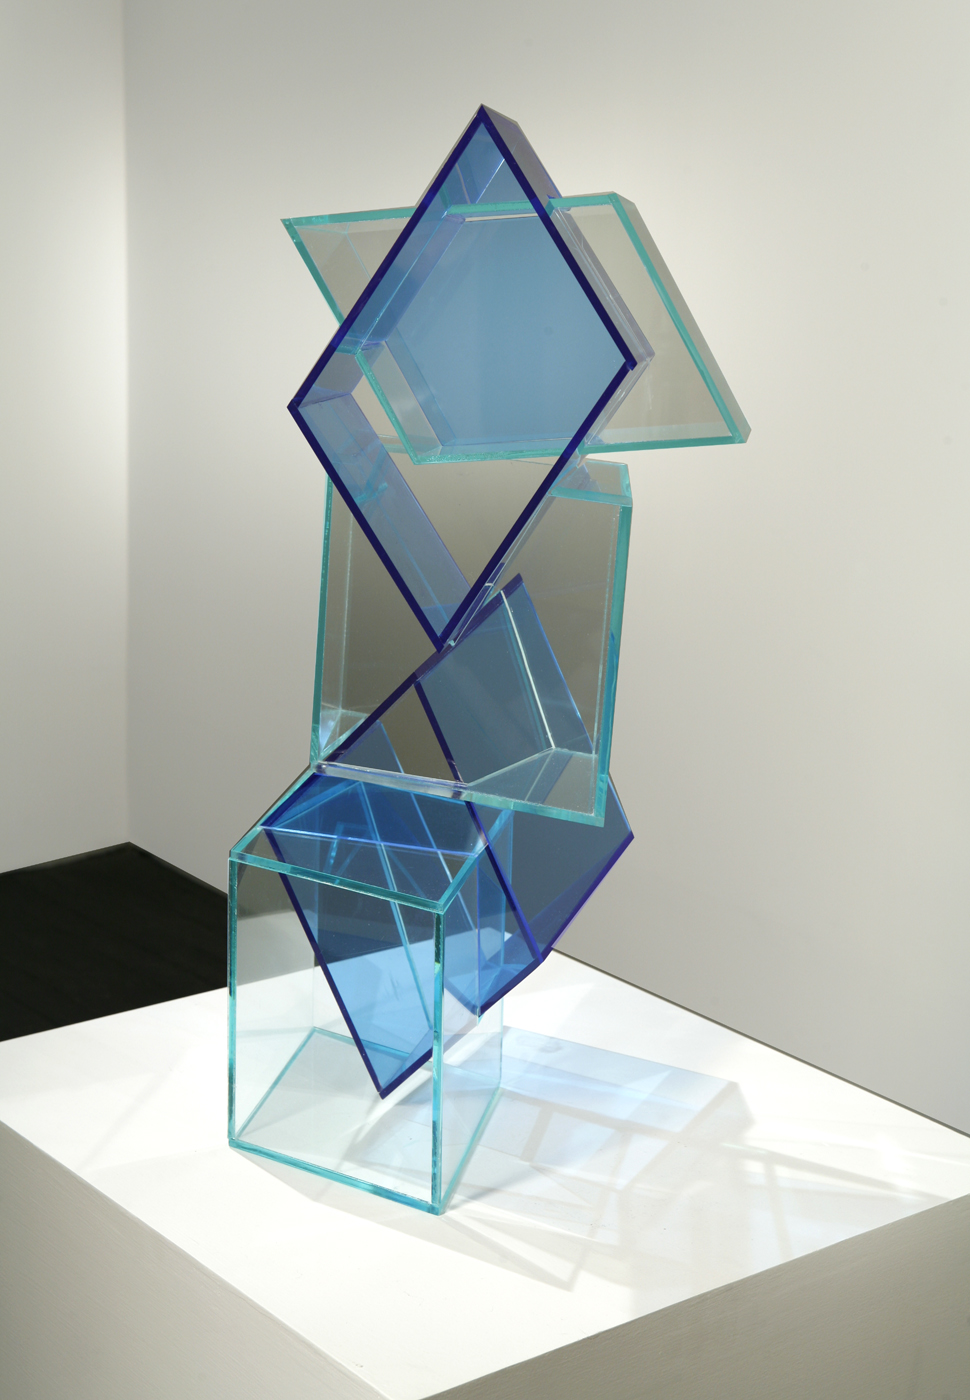 Slippage Register  (view 2) 2007 Plexiglas25Hx13Wx13D  inches / 64x33x33 cm